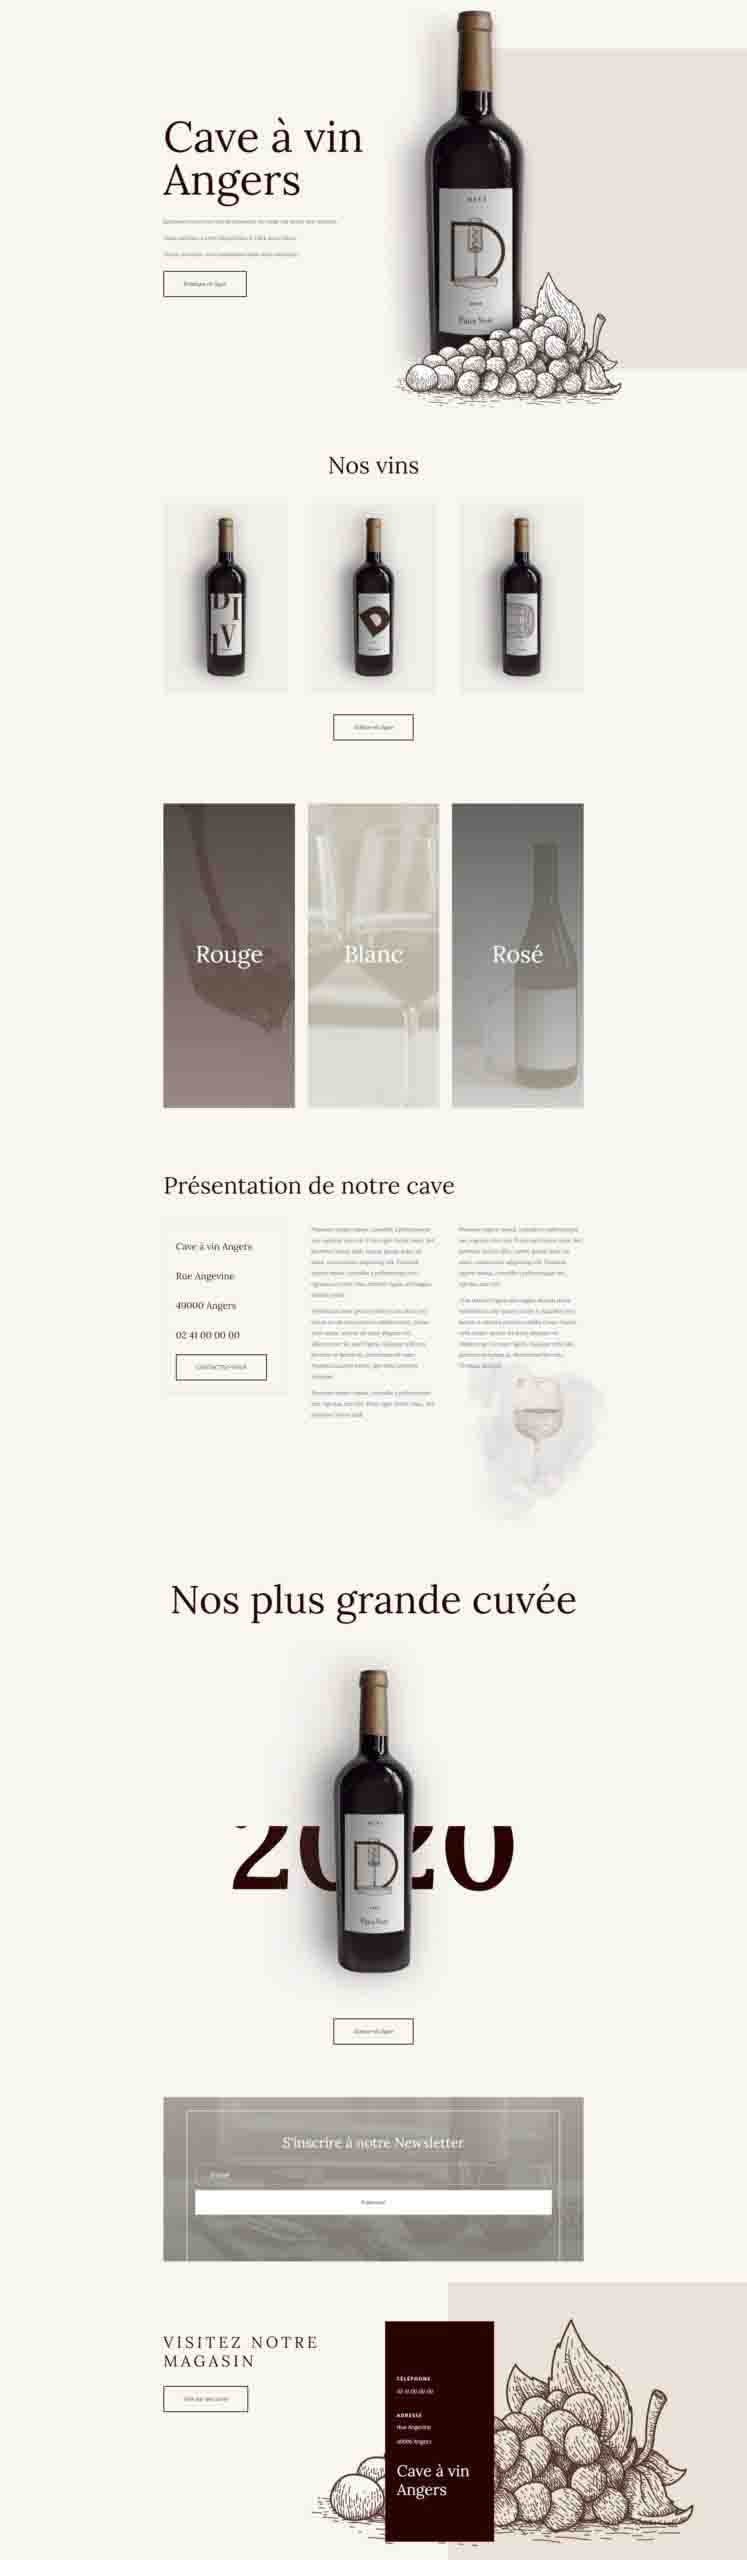 page-accueil-site-click-and-collect-Gwen-and-Ben-agence-web-Angers-scaled